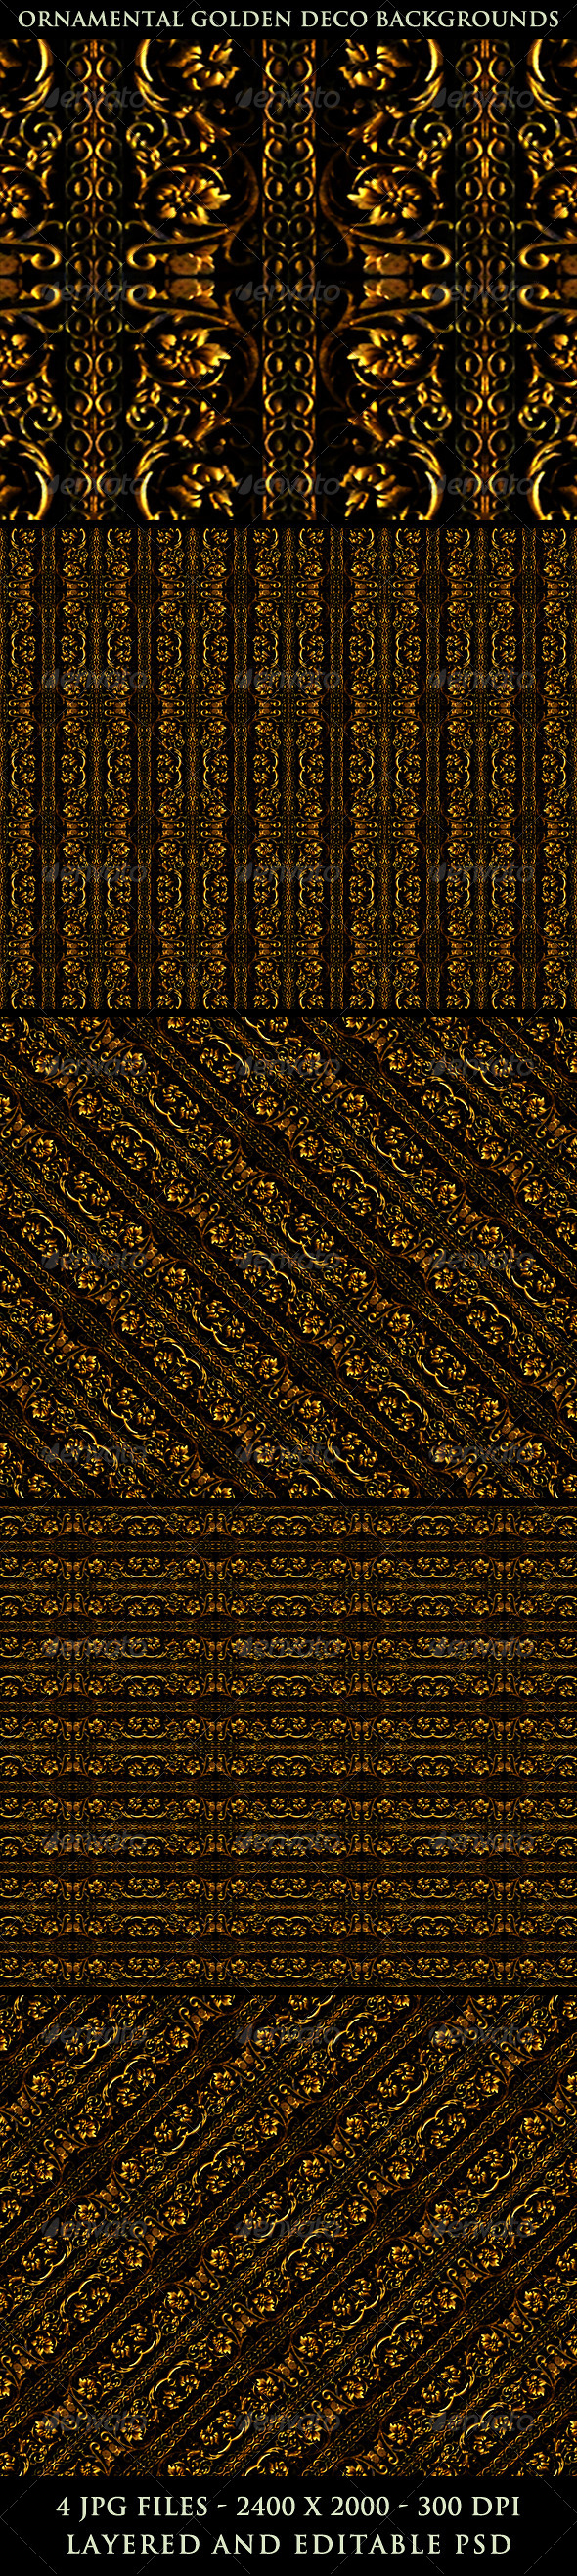 Ornamental Golden Deco Backgrounds - Patterns Backgrounds